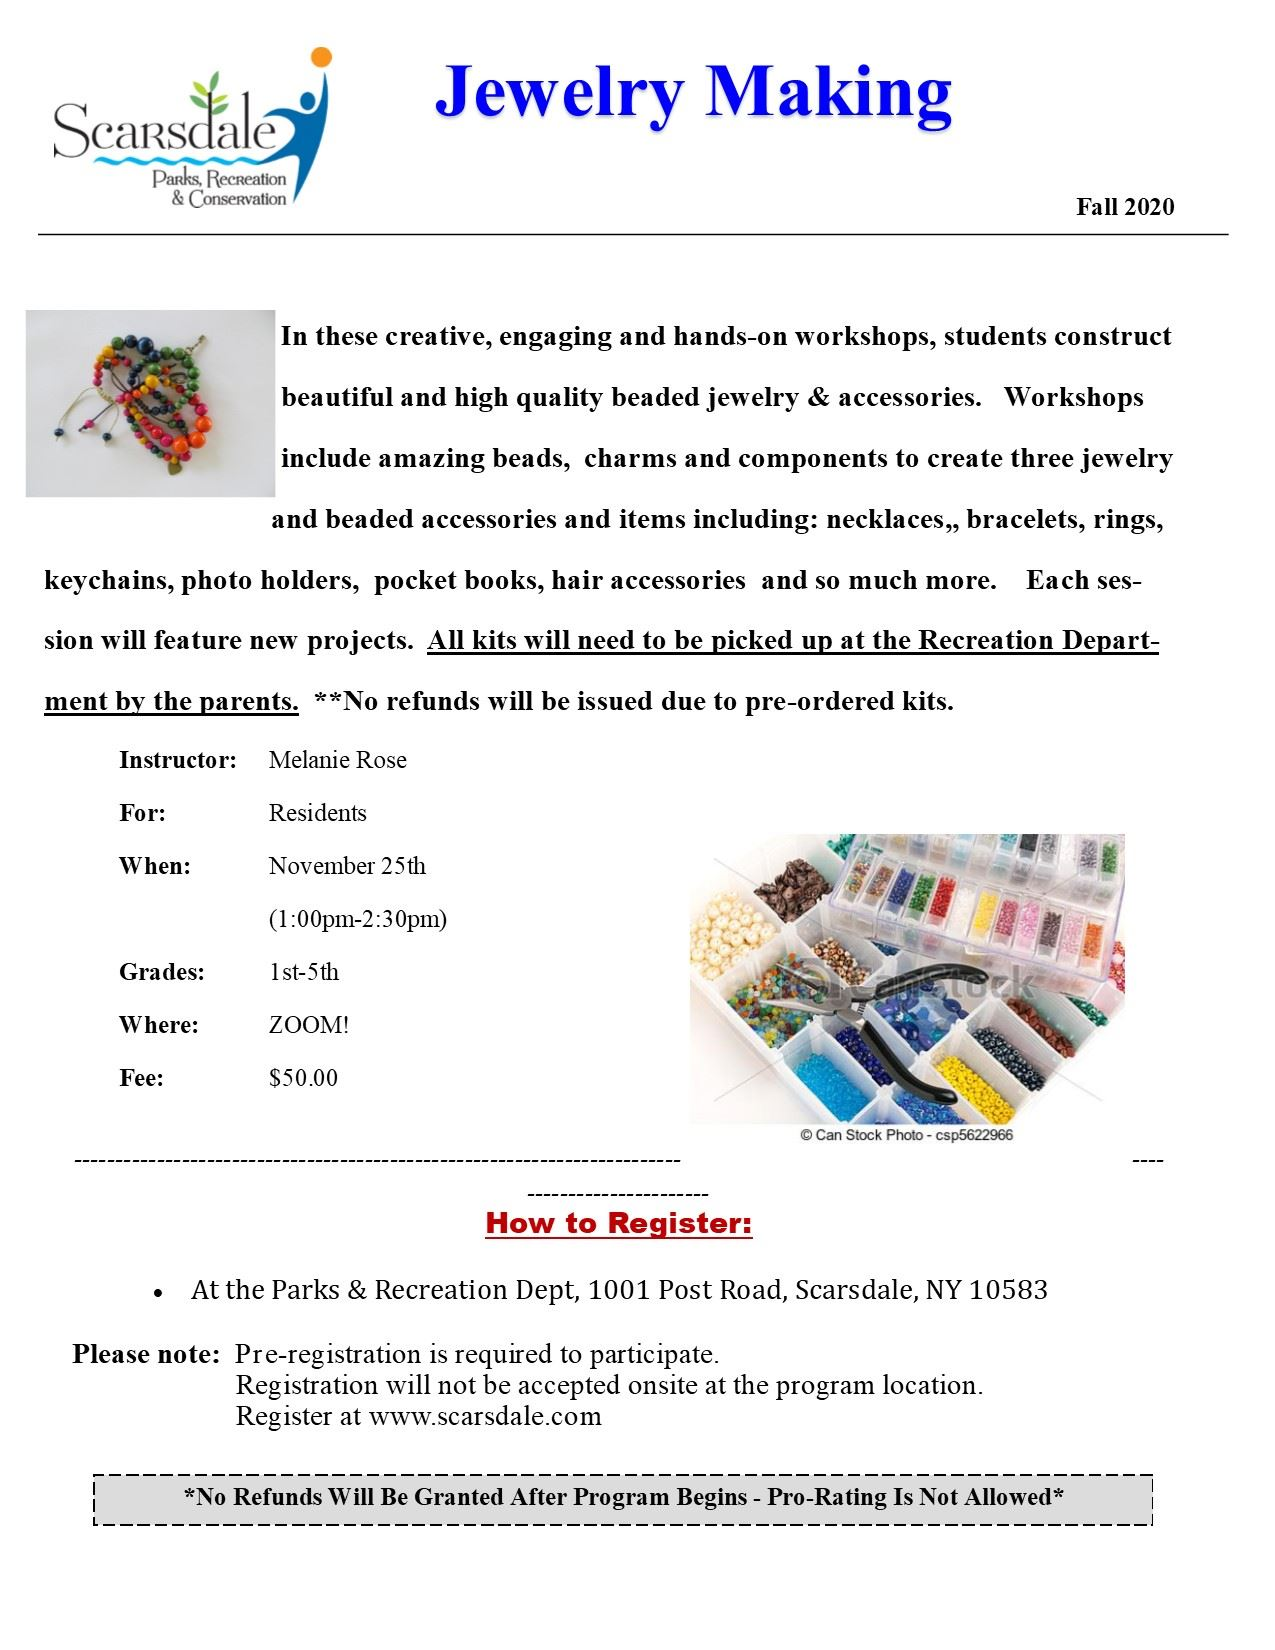 Jewelry Making Flyer - Fall 2020 ZOOM 11252020